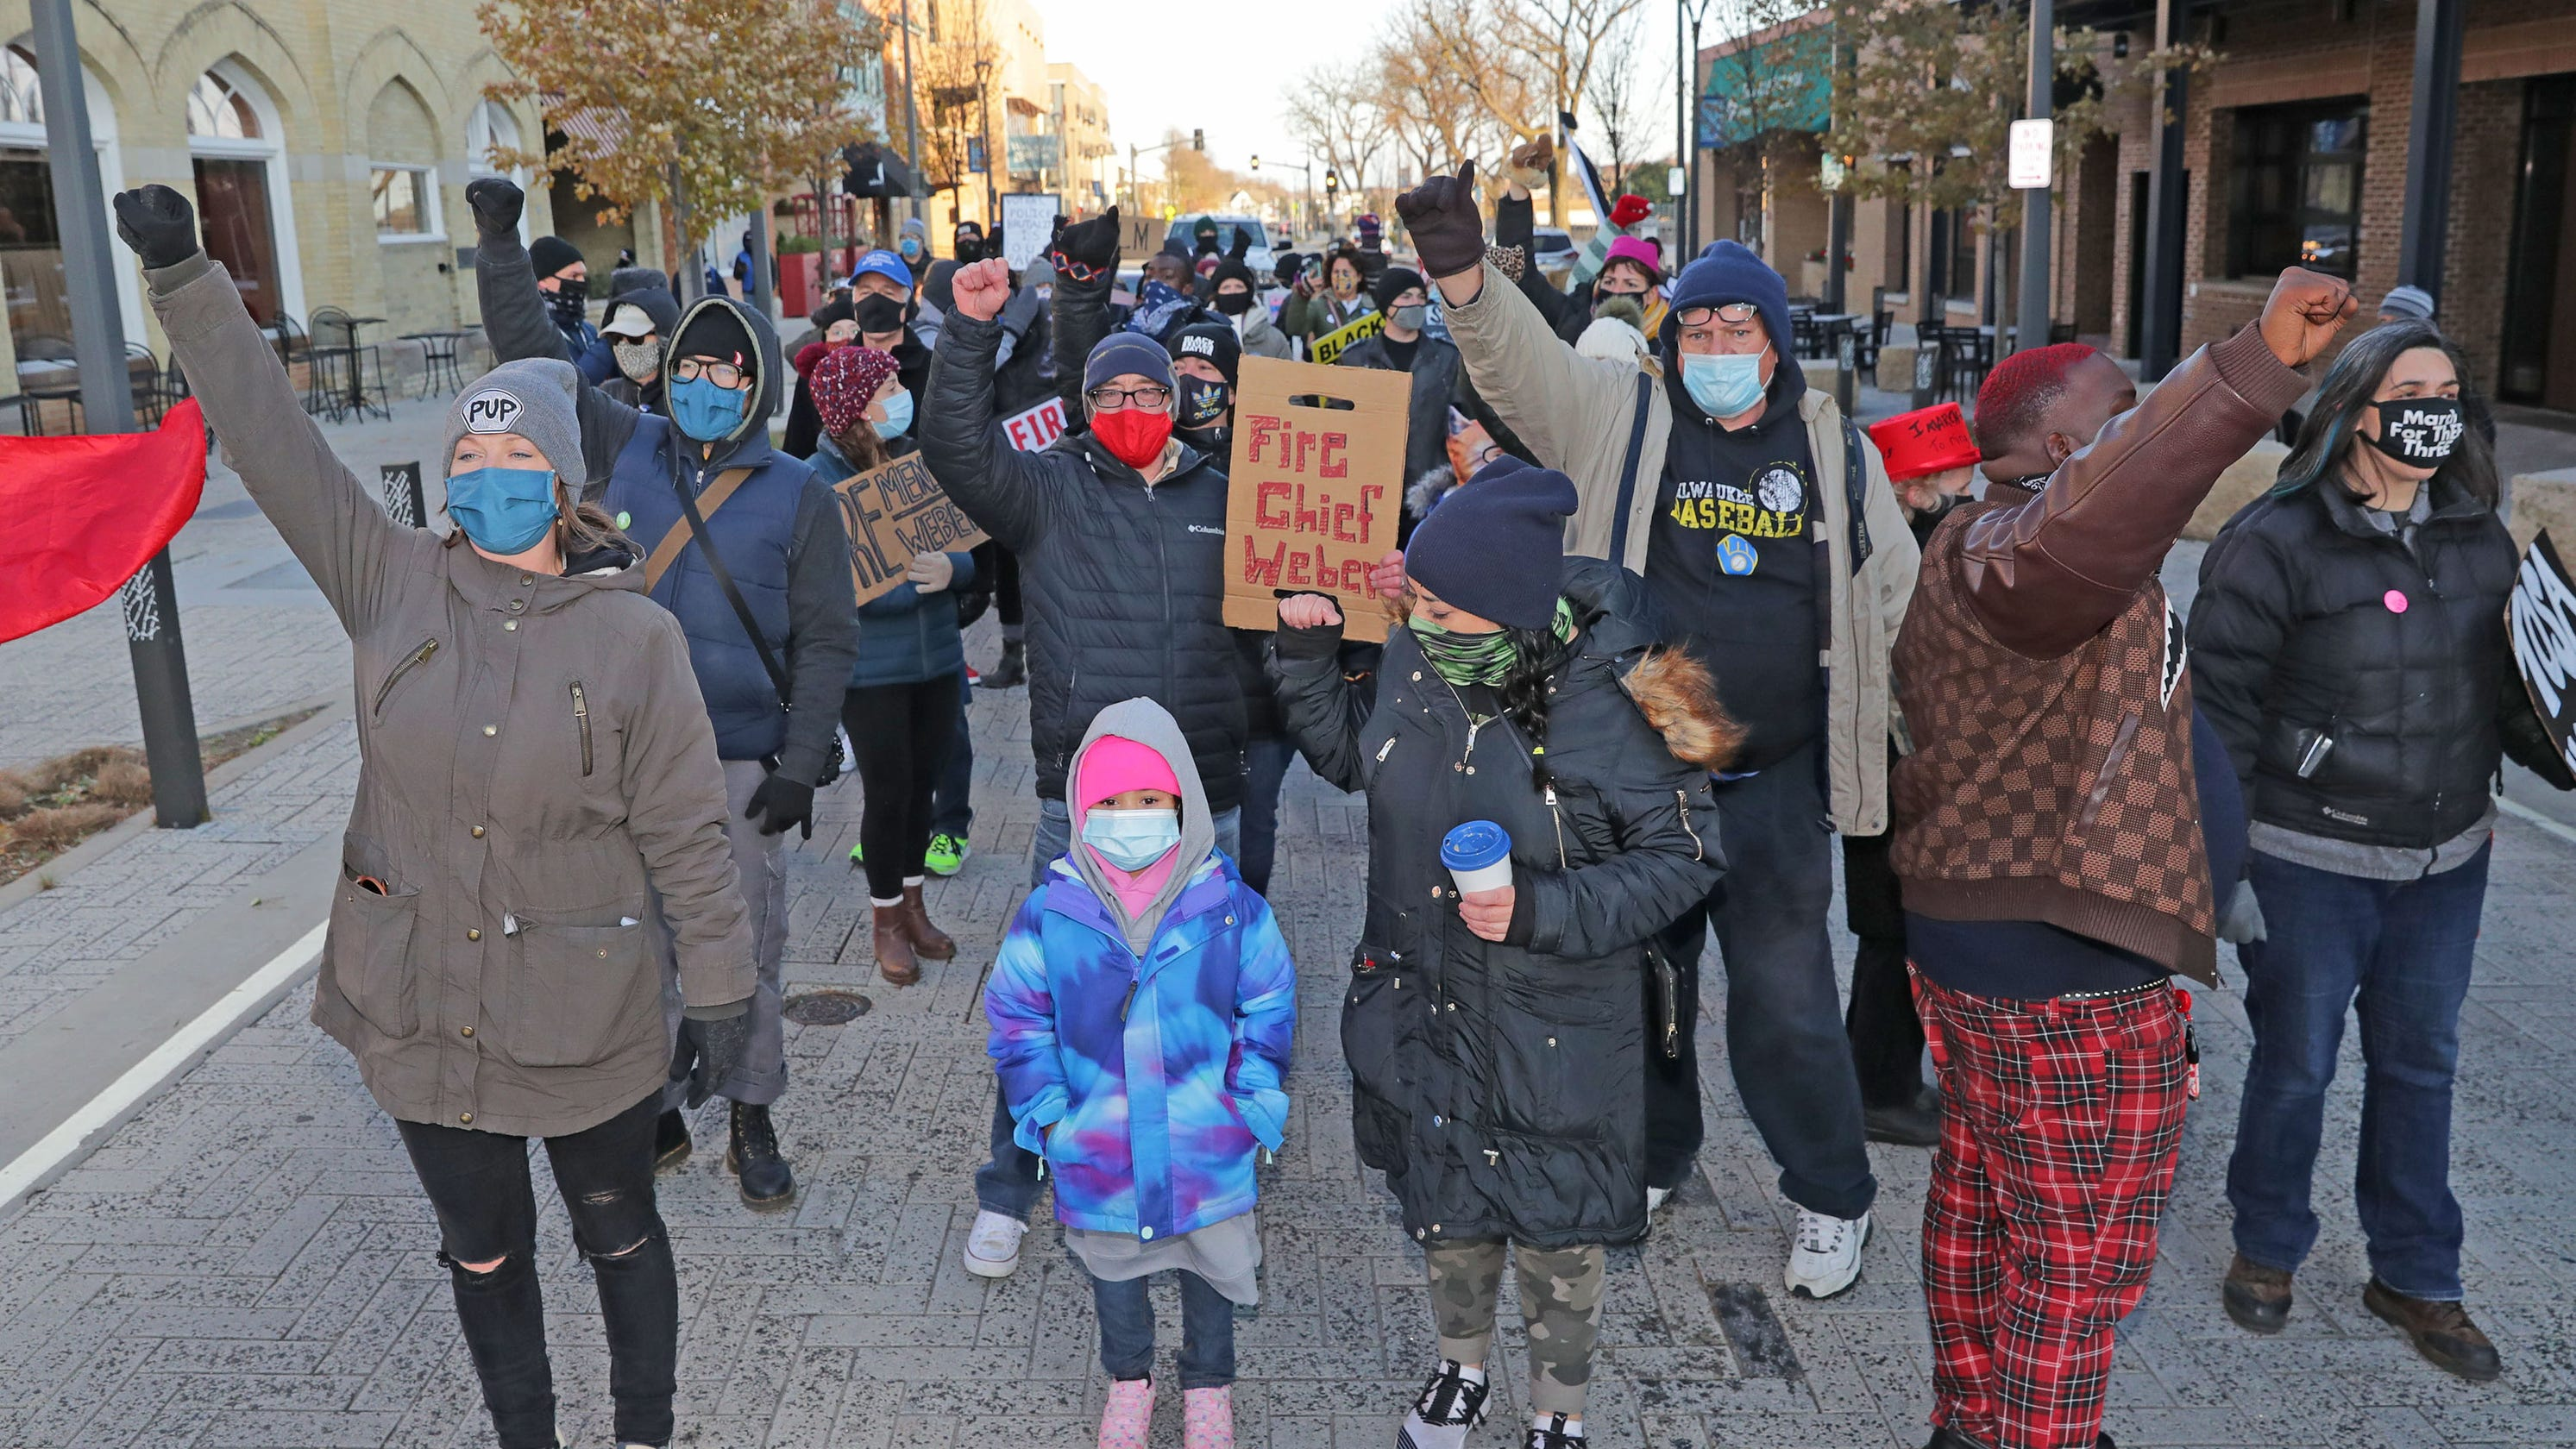 'The police are making us look bad': Protesters march through Wauwatosa calling for change